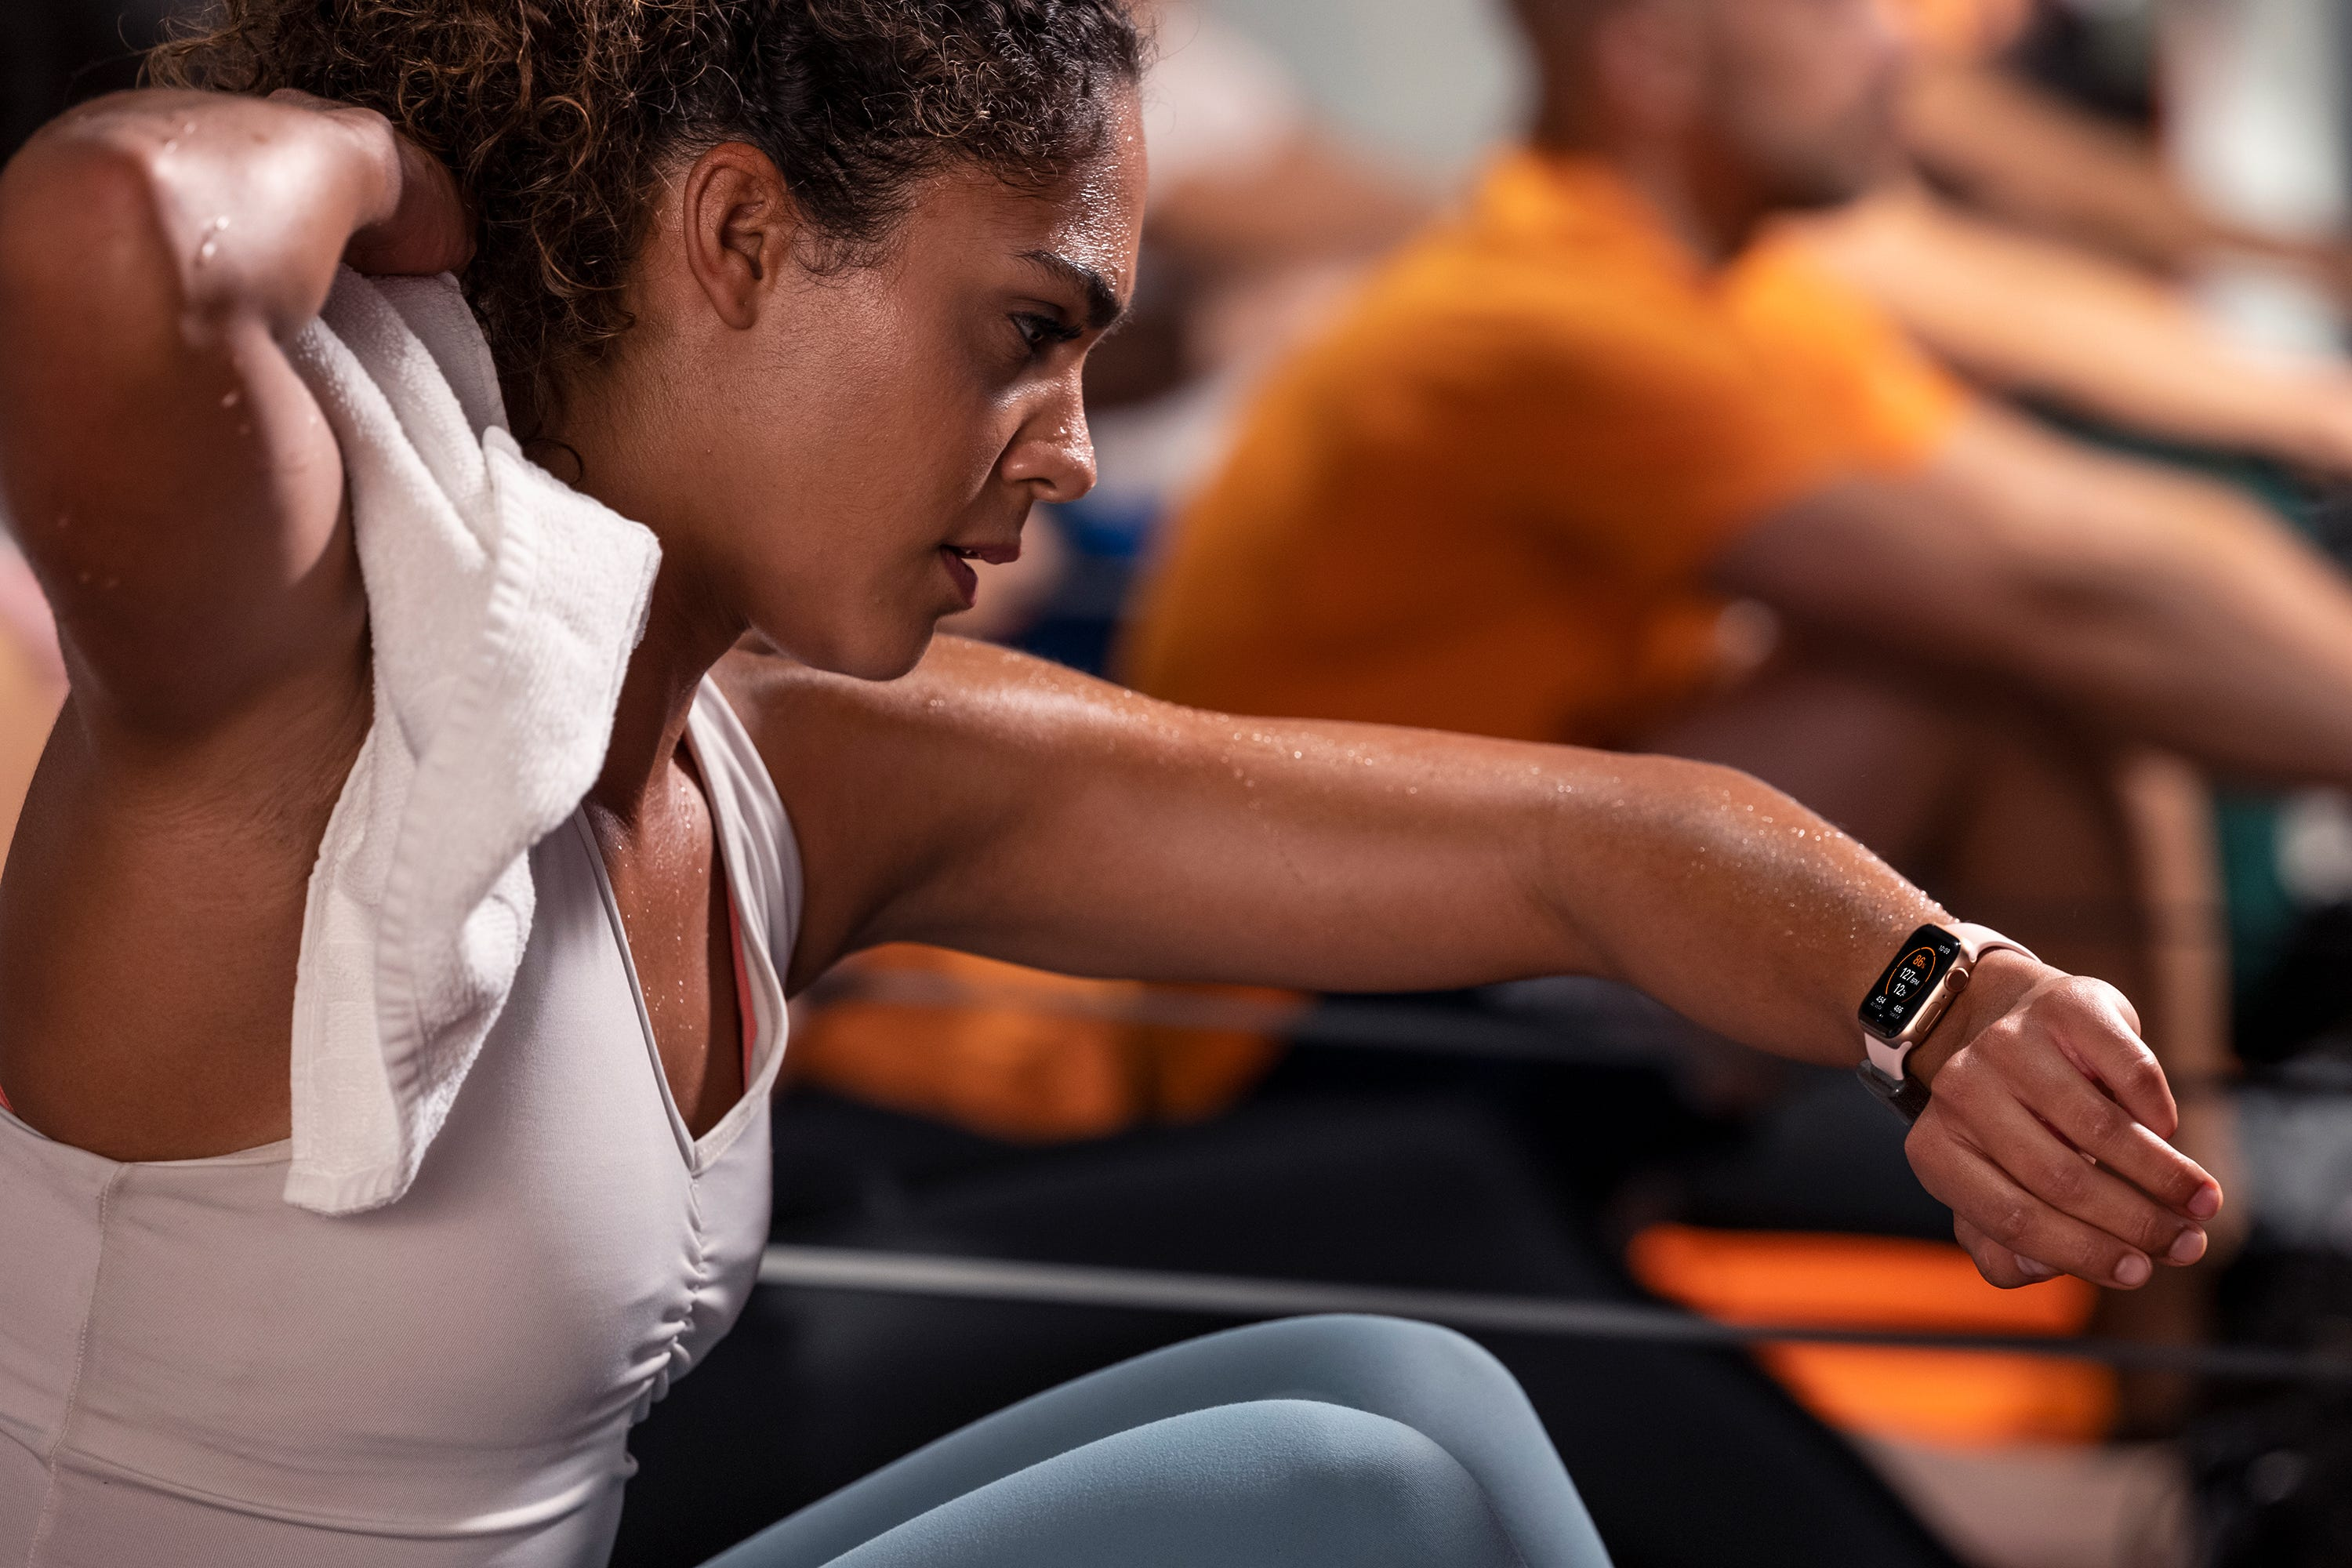 Connect an Apple Watch to help pay for your gym membership by working out